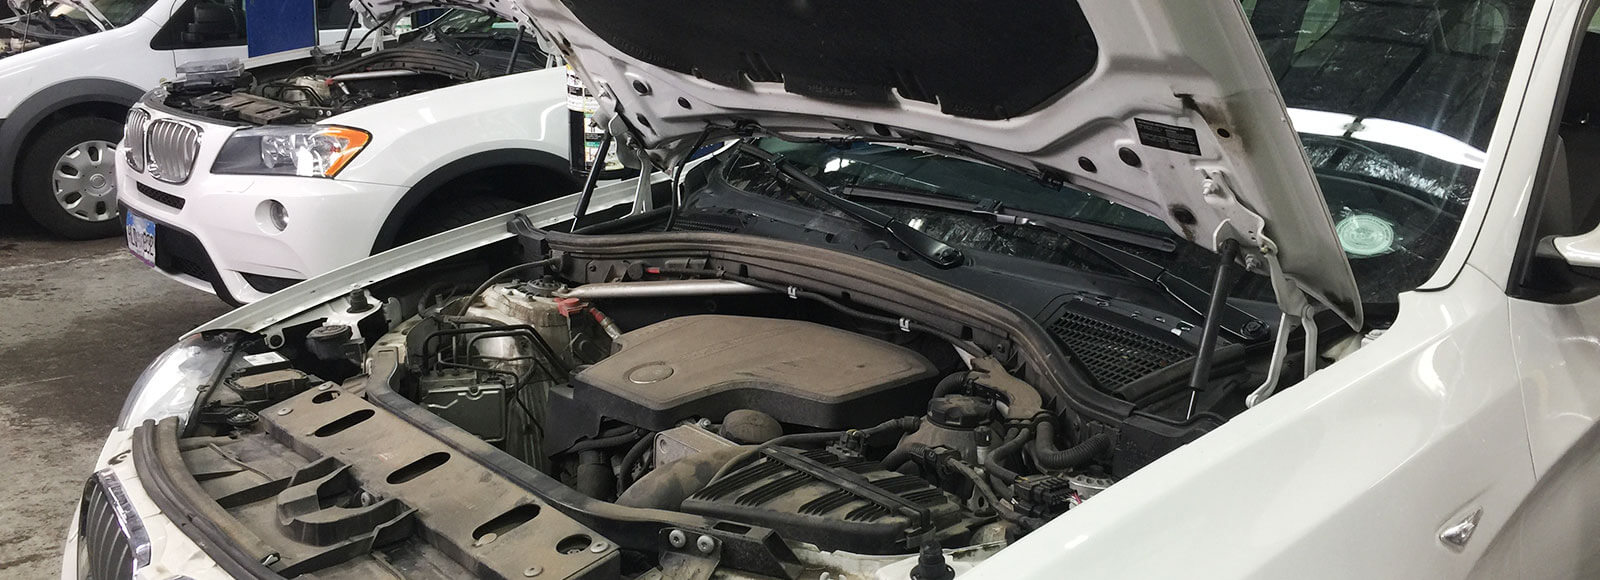 Auto Engine Repair, Replacement Boulder, CO